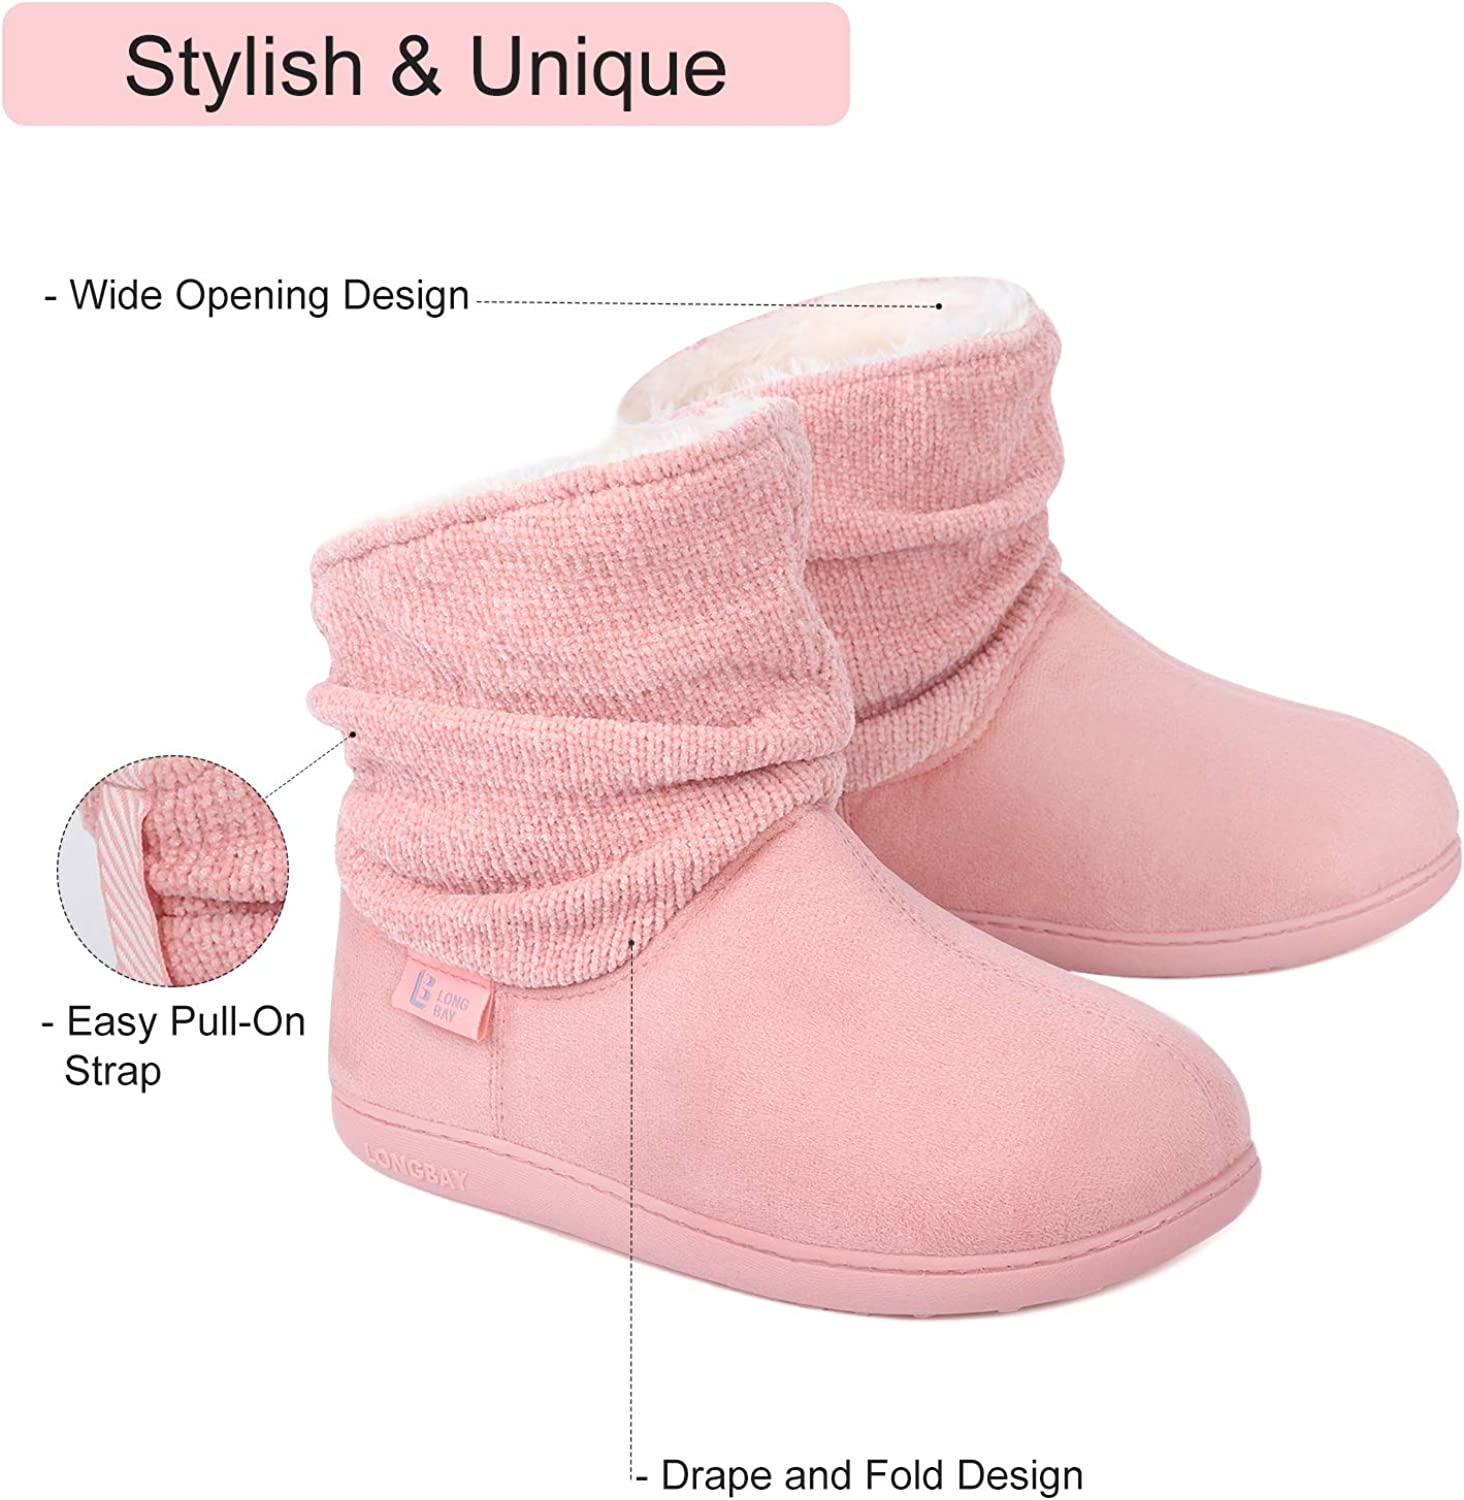 LongBay Womens Warm Chenille Knit Bootie Slippers Memory Foam Comfy Suede Fluffy Faux Fur Memory Foam Boots House Shoes